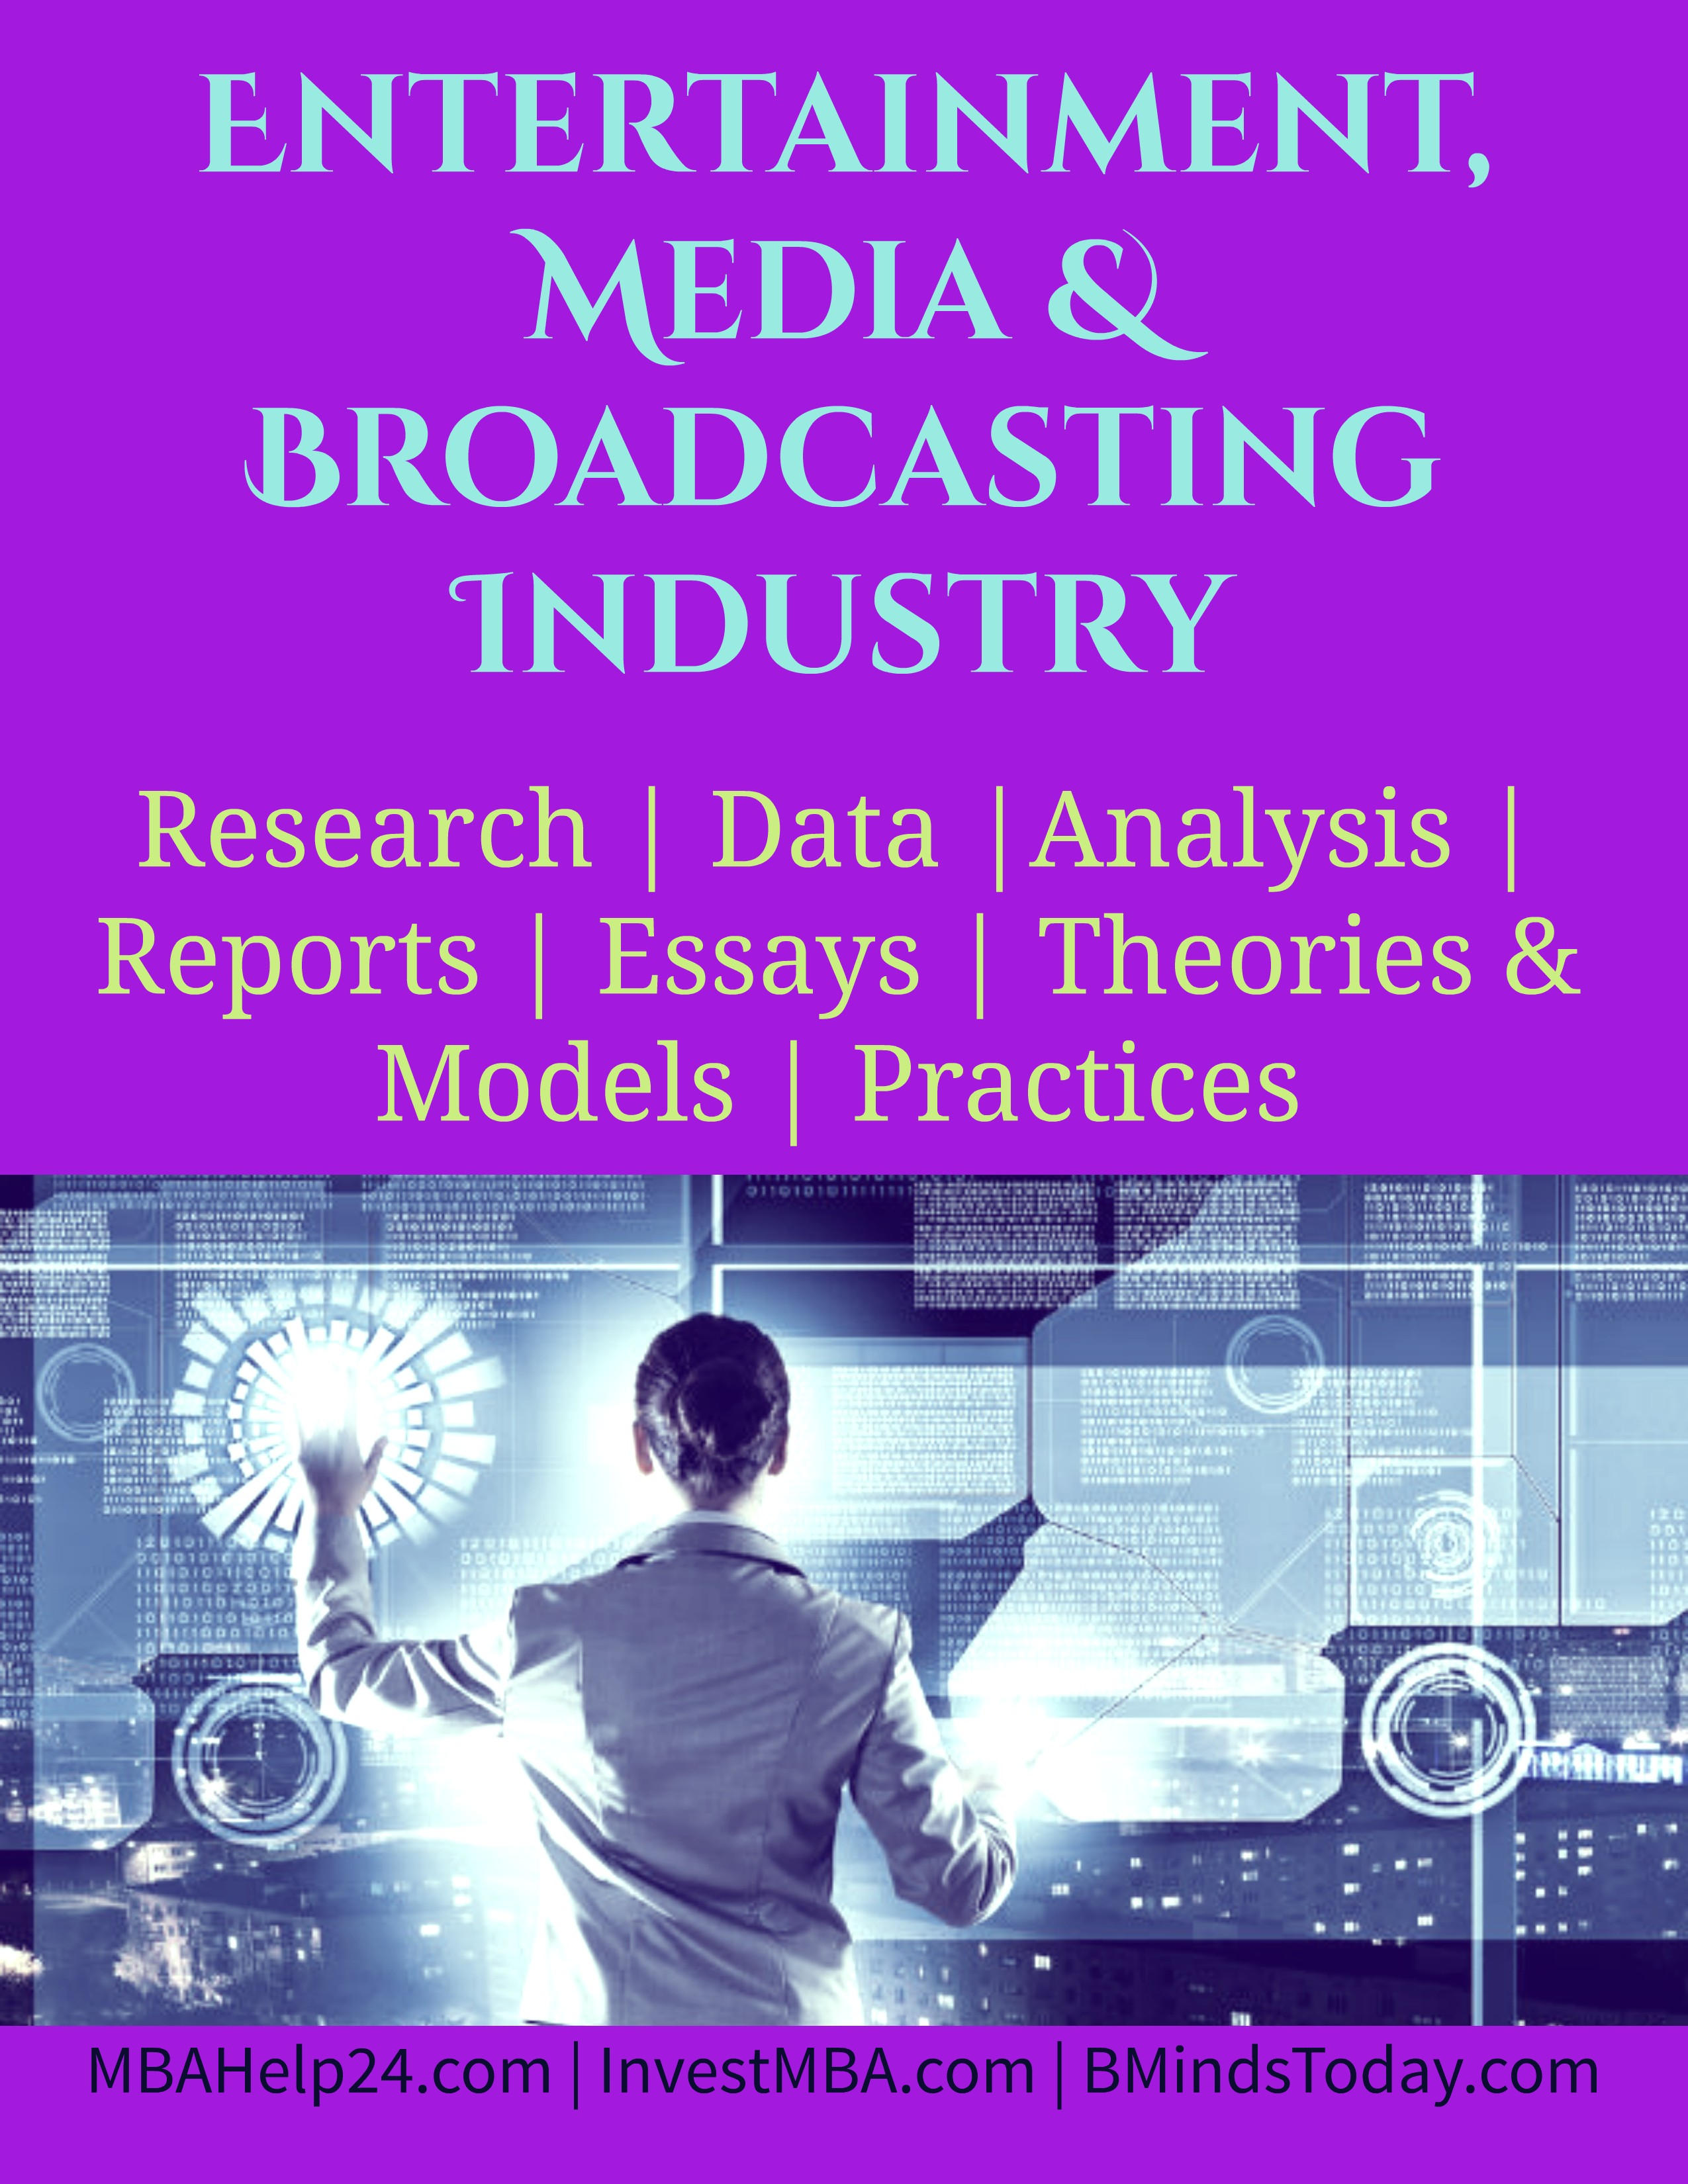 Entertainment, Media & Broadcasting Industry Entertainment Entertainment, Media and Broadcasting Industry Entertainment Media Broadcasting Industry